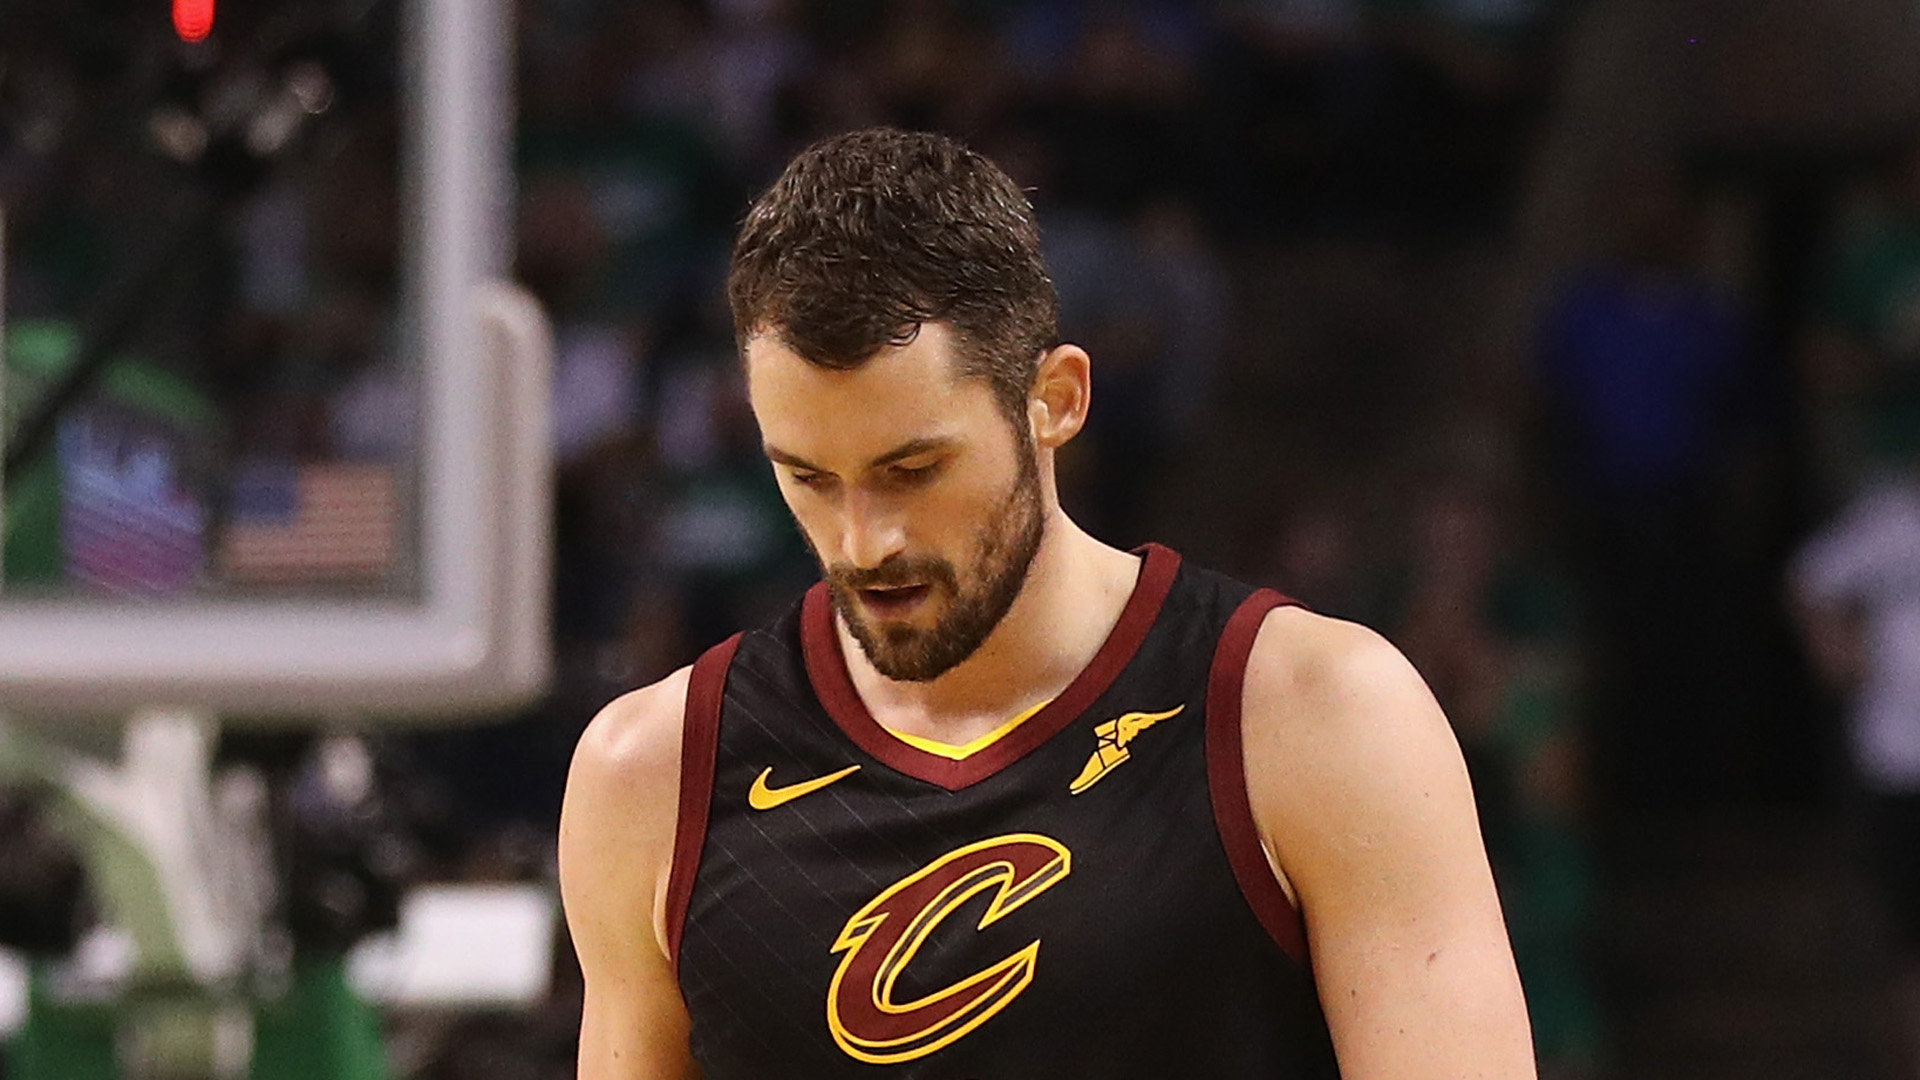 Kevin Love injury update: Cavaliers star could miss extended time with foot soreness